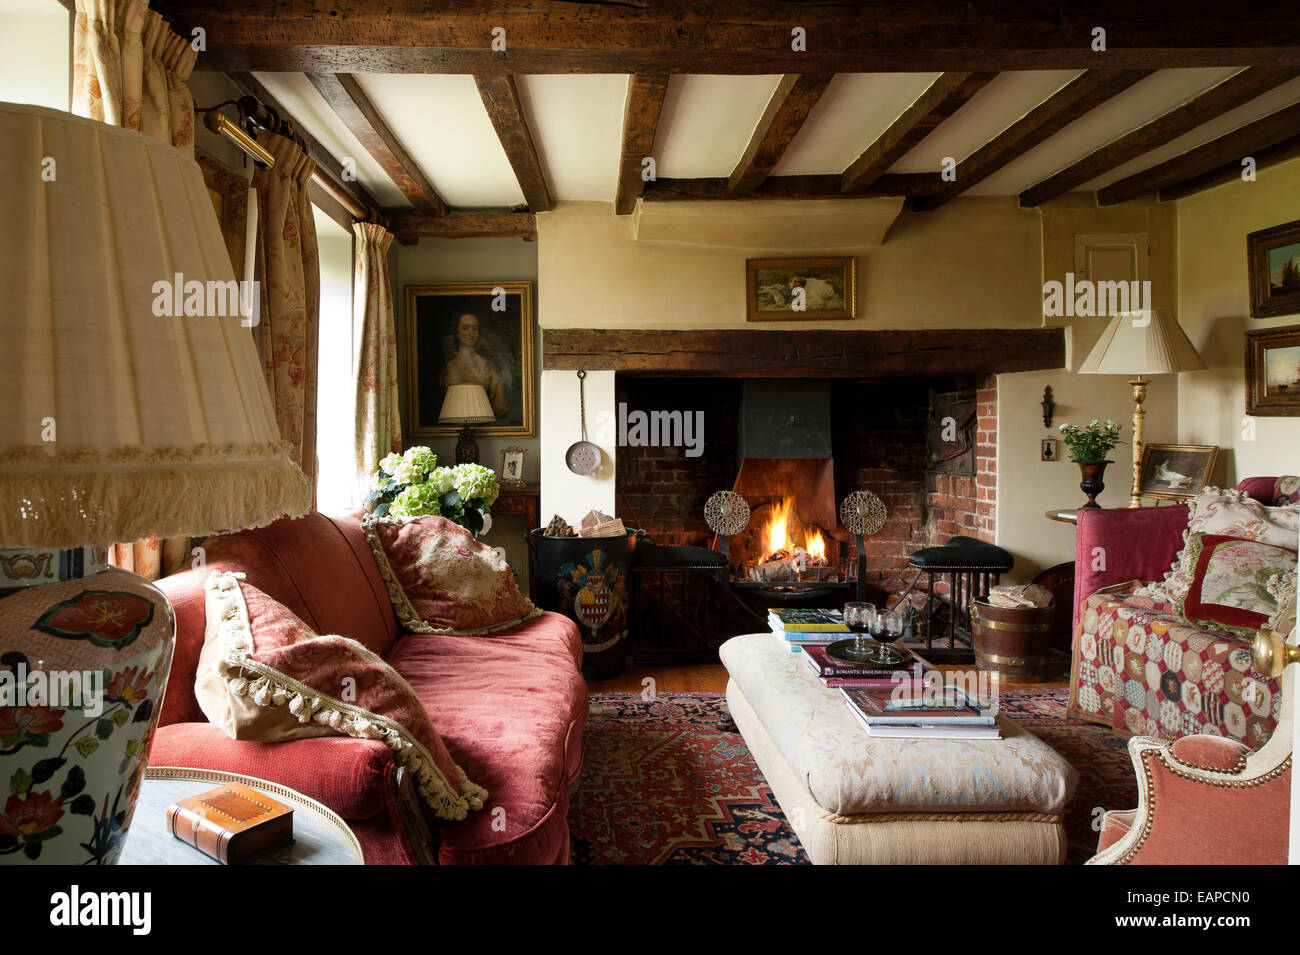 inglenook kamin im gem tlichen wohnzimmer mit original balkendecke und rotes sofa stockfoto. Black Bedroom Furniture Sets. Home Design Ideas